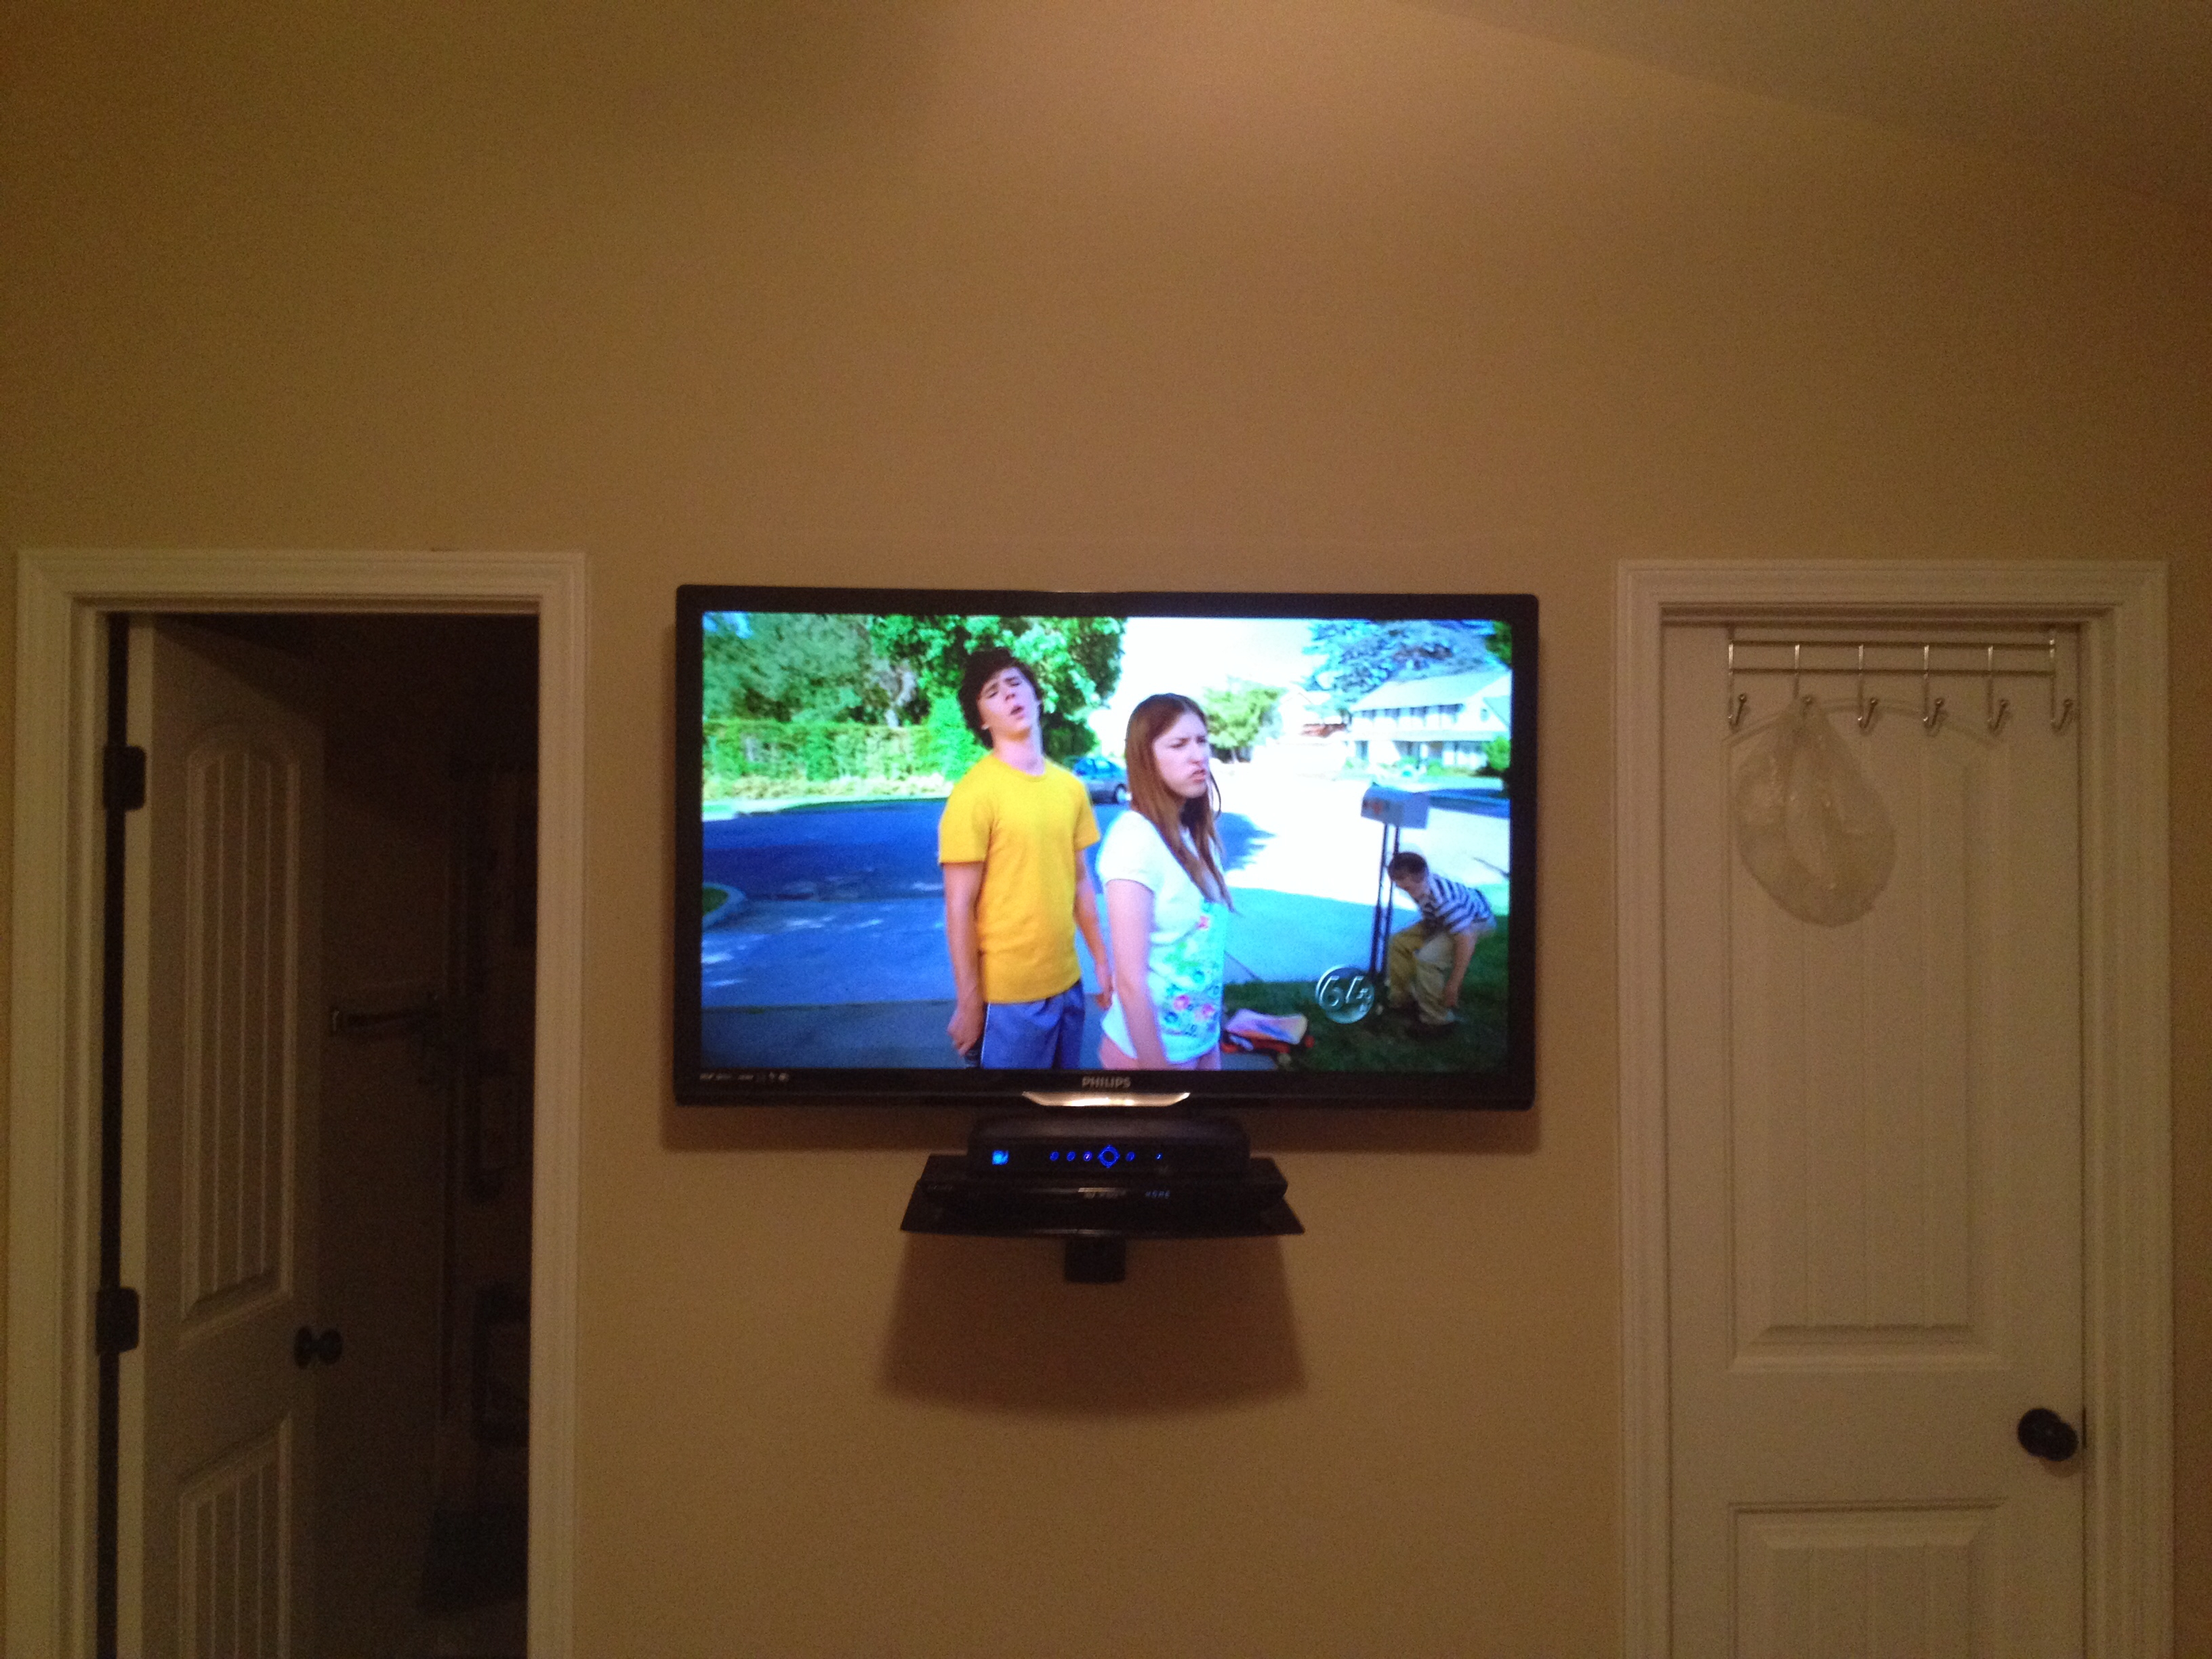 Led Tv Wall Mount Installation With Floating Glass Shelf For Cable Throughout Glass Shelf For Dvd Player (#8 of 12)